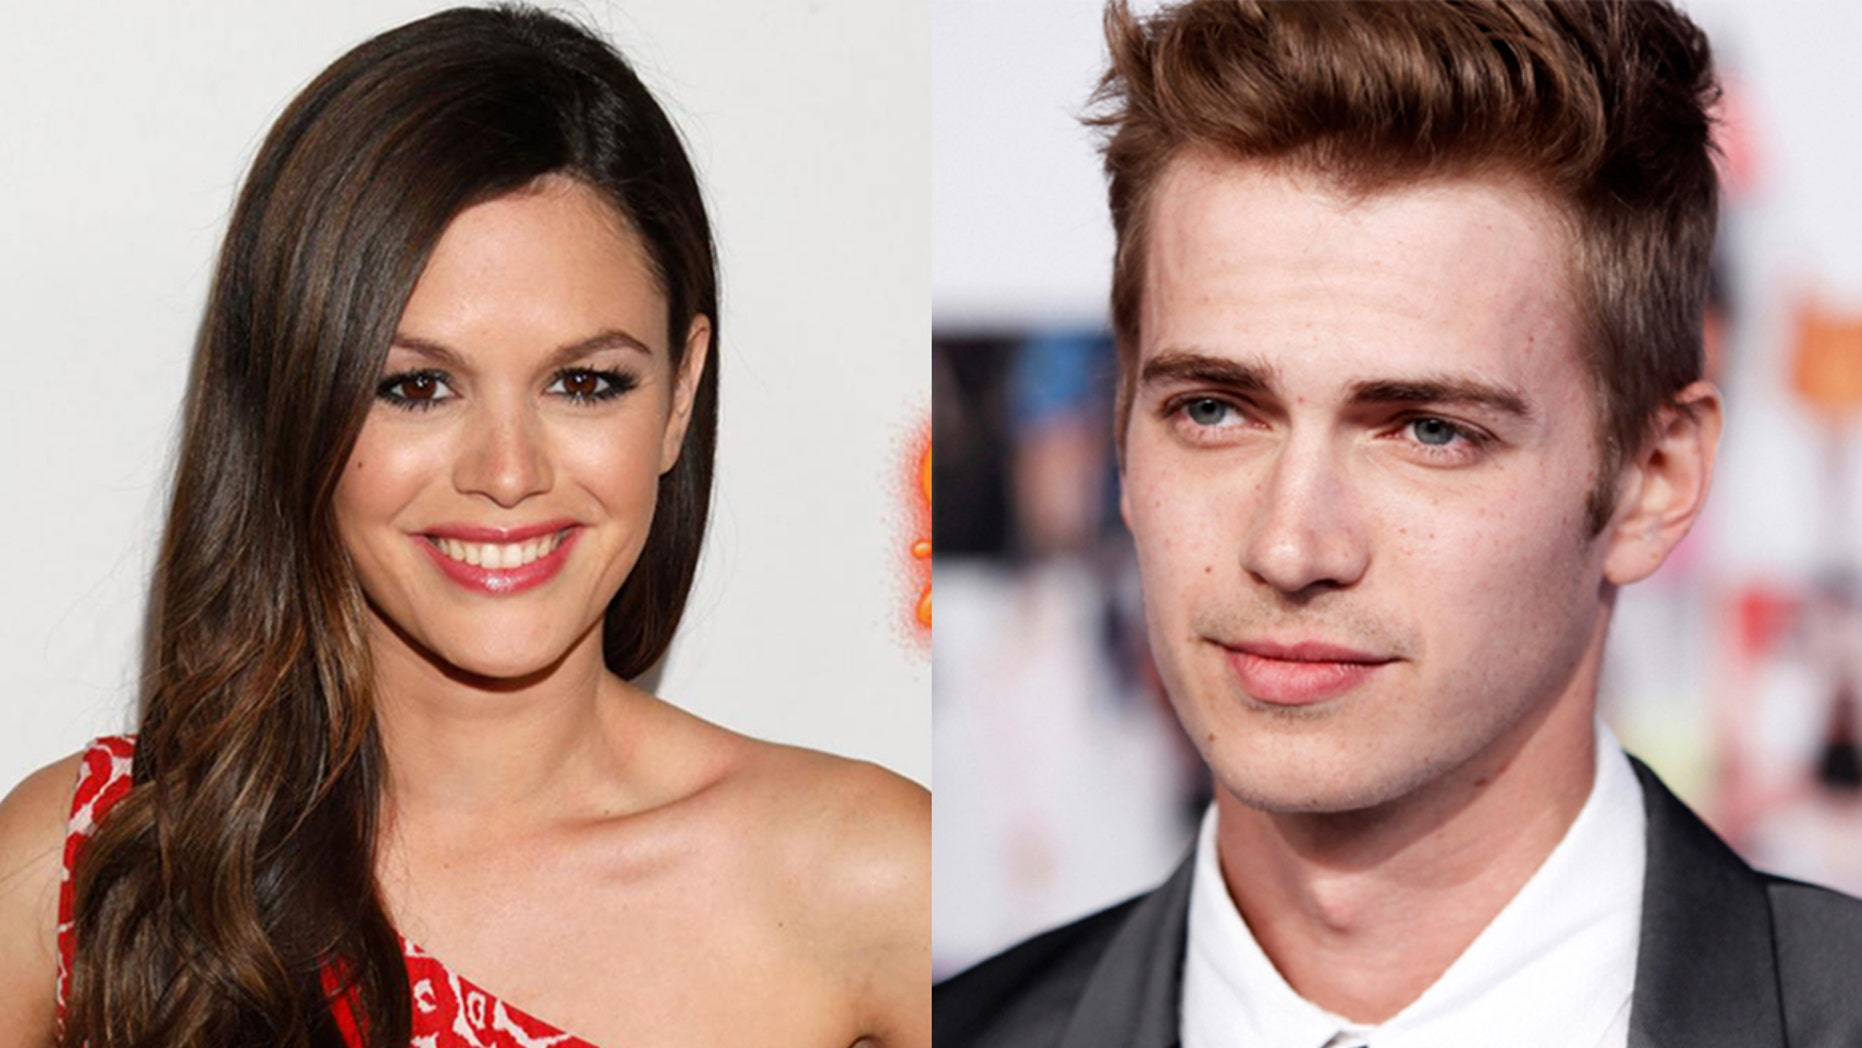 Rachel Bilson discusses co-parenting her 3-year-old daughter with ex Hayden Christensen.